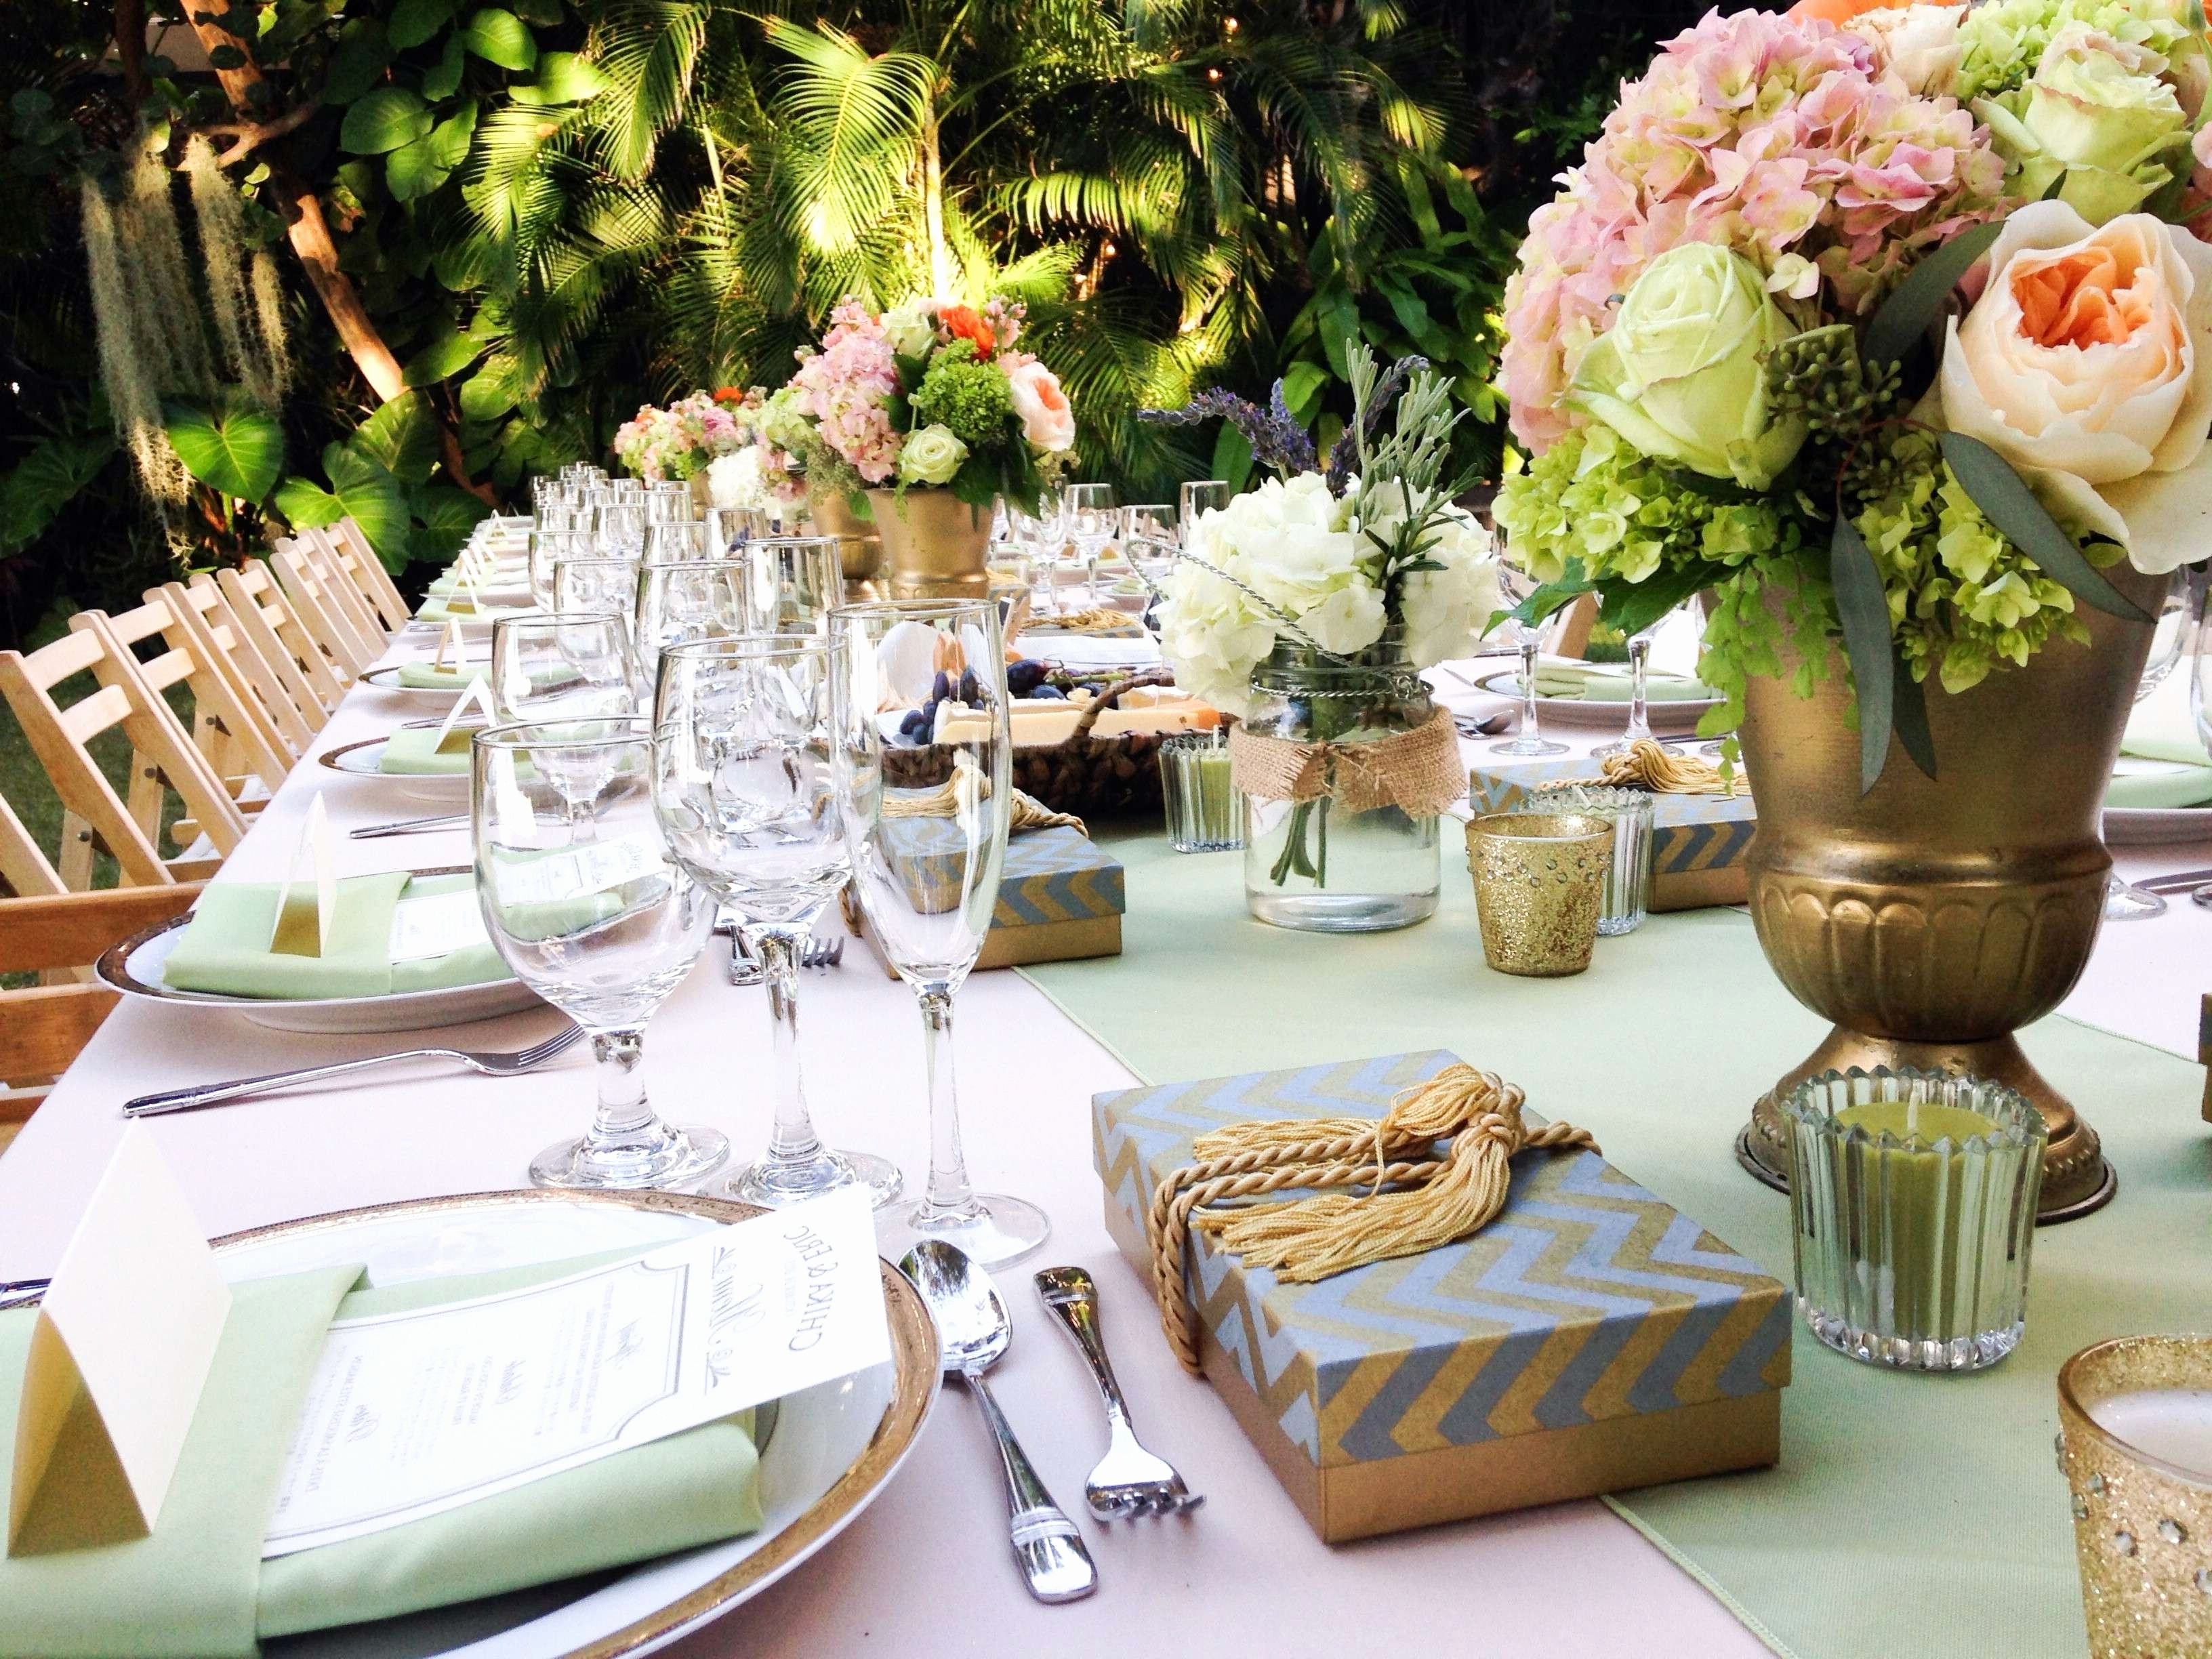 tall vases for wedding reception of wedding reception table decorations on a budget luxury simple in wedding reception table decorations on a budget elegant inspirational wedding decoration ideas bud best cheap wedding